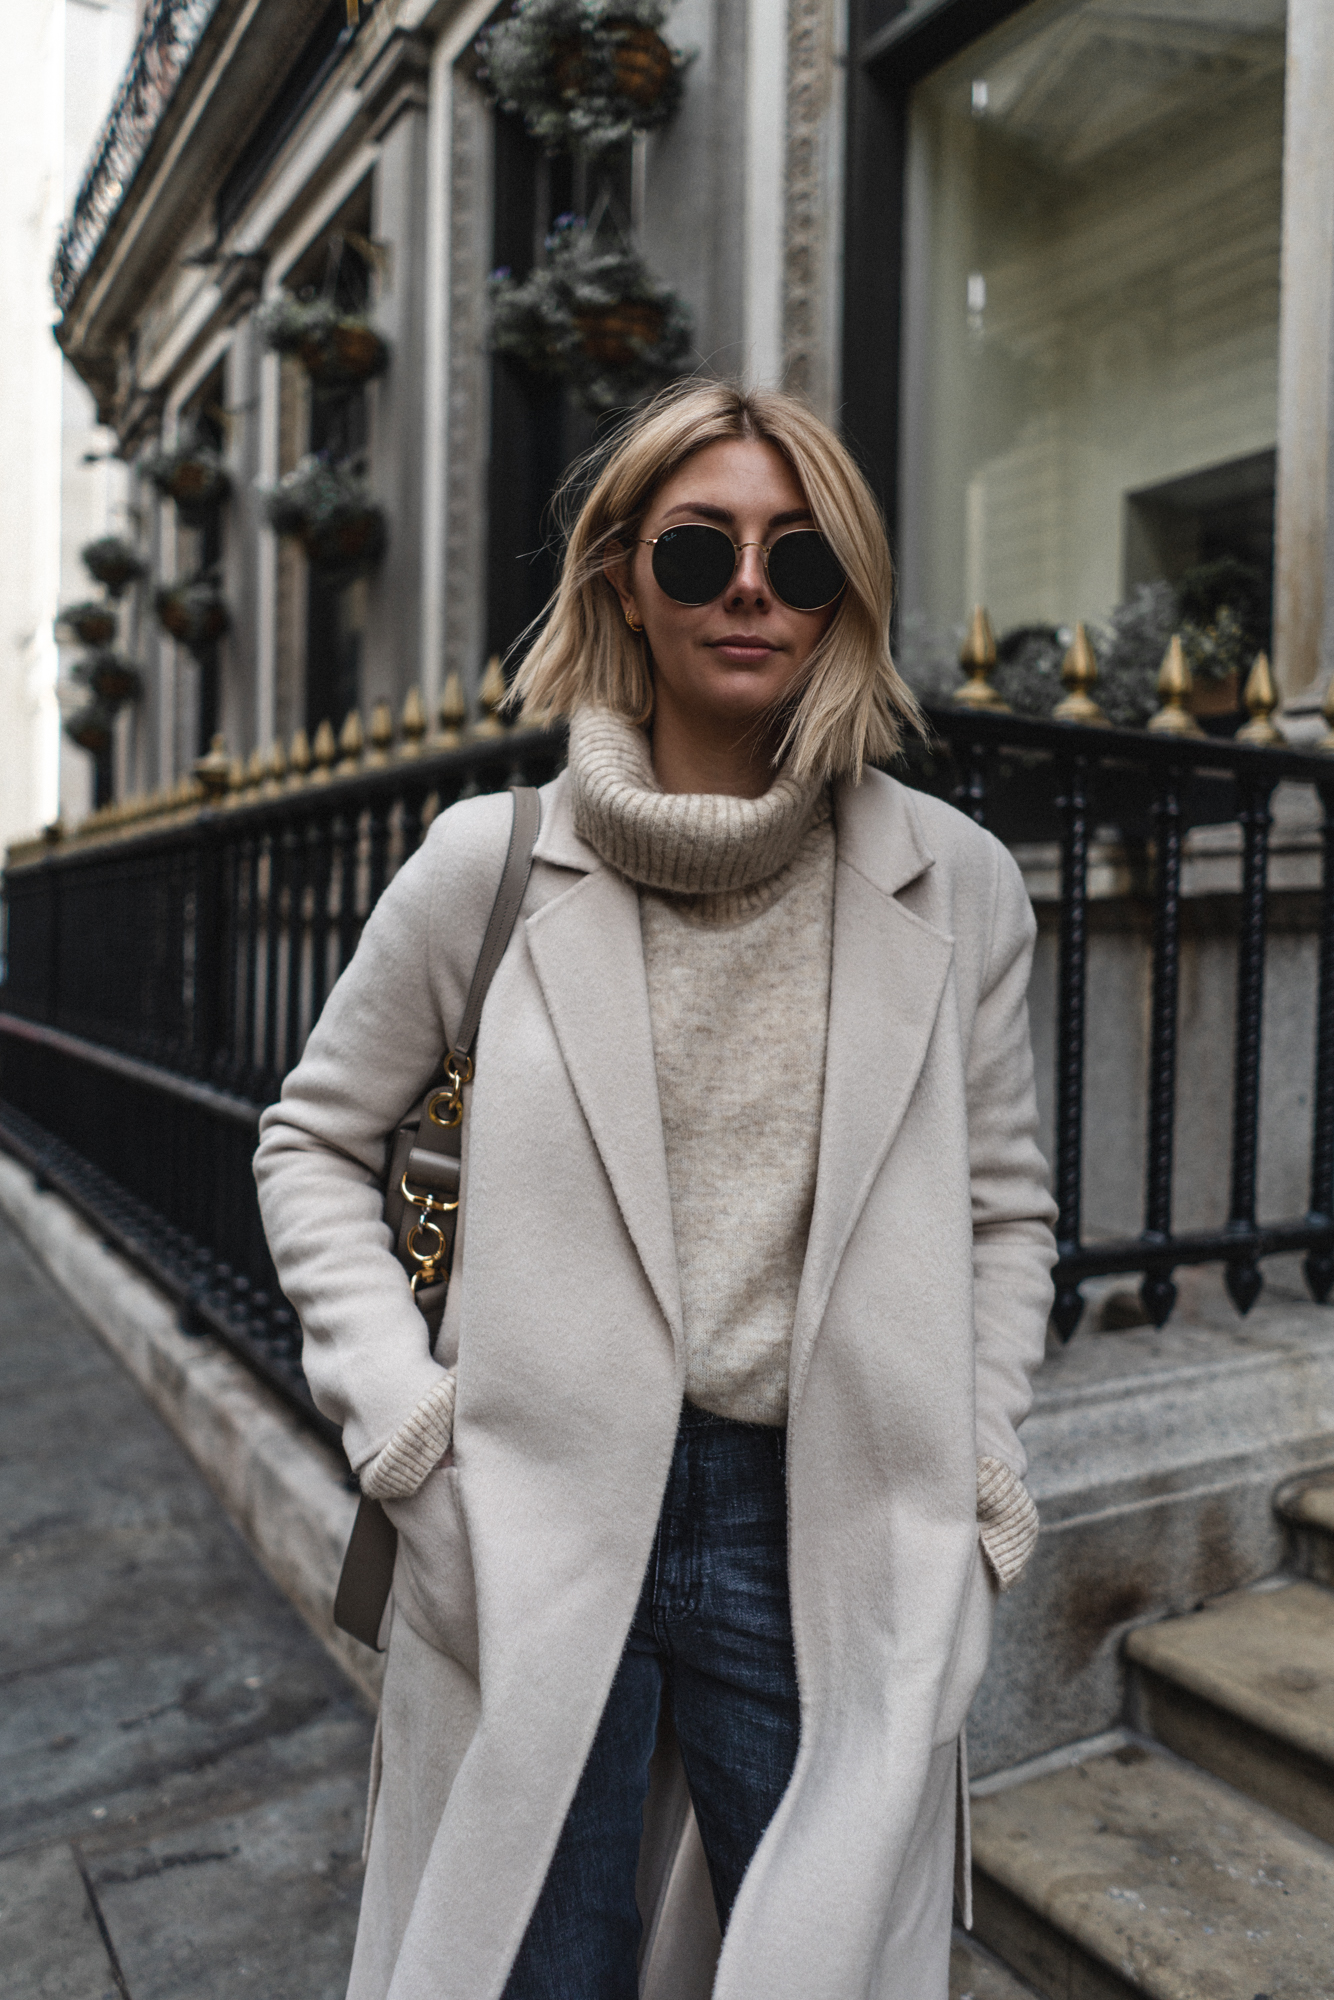 sezane cream coat, new bob hair